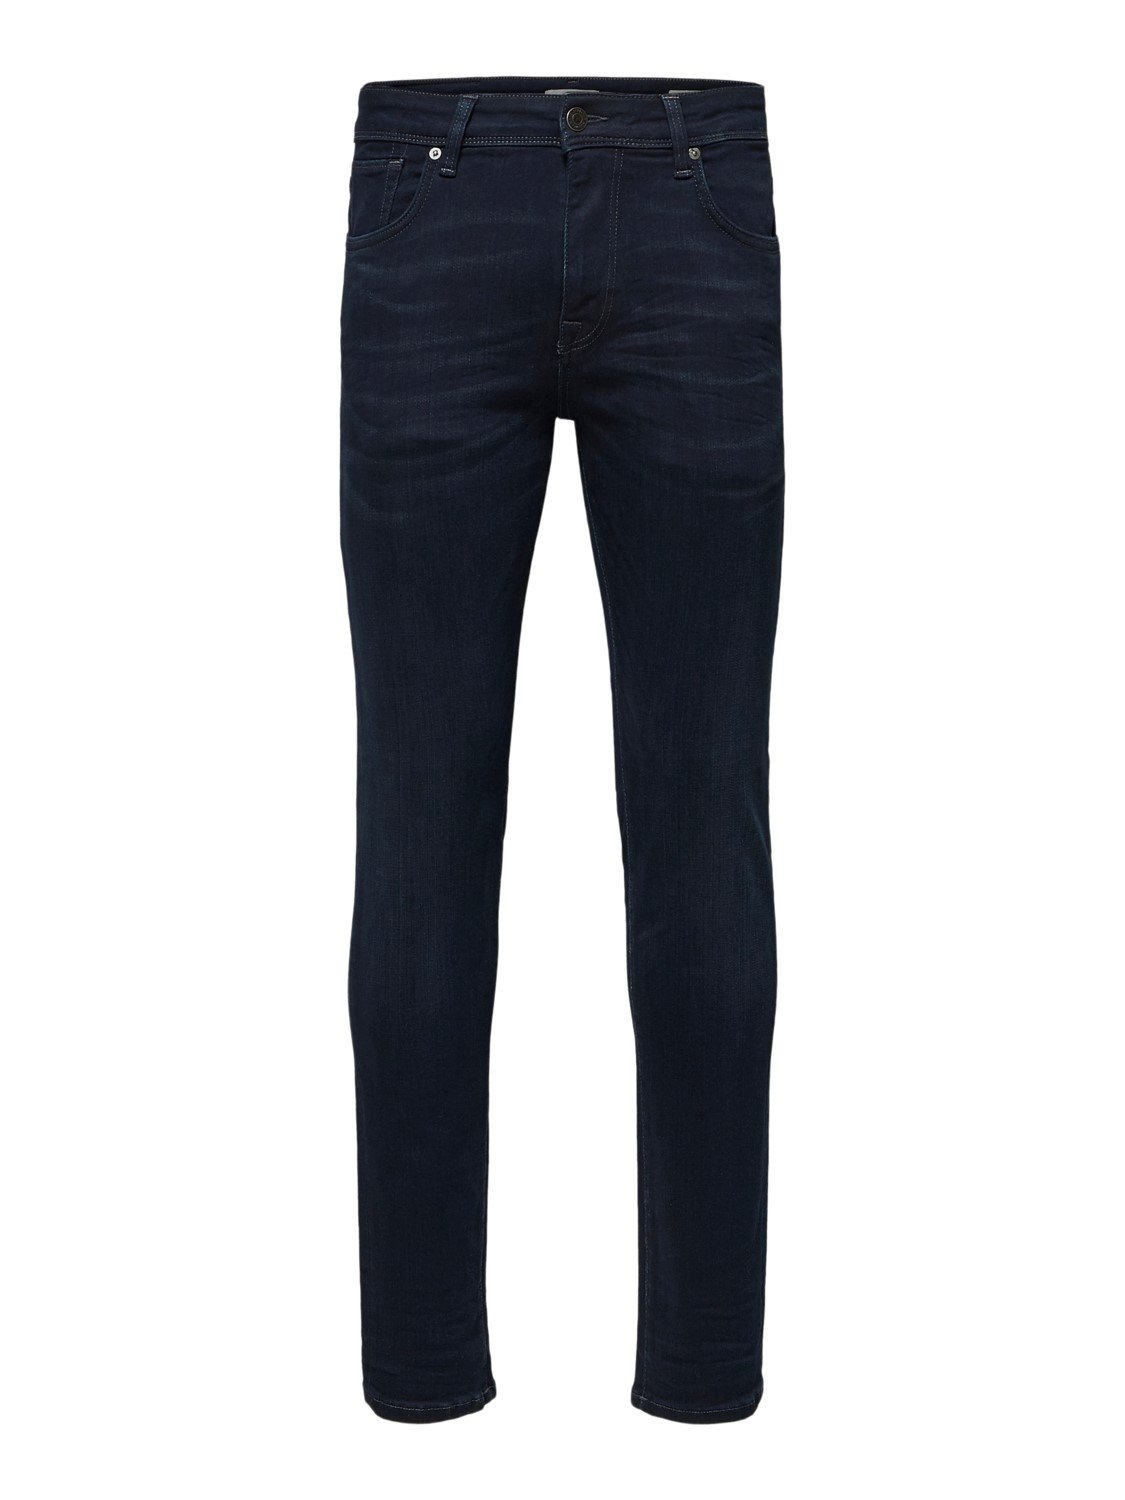 Selected Super Stretch Slim jean